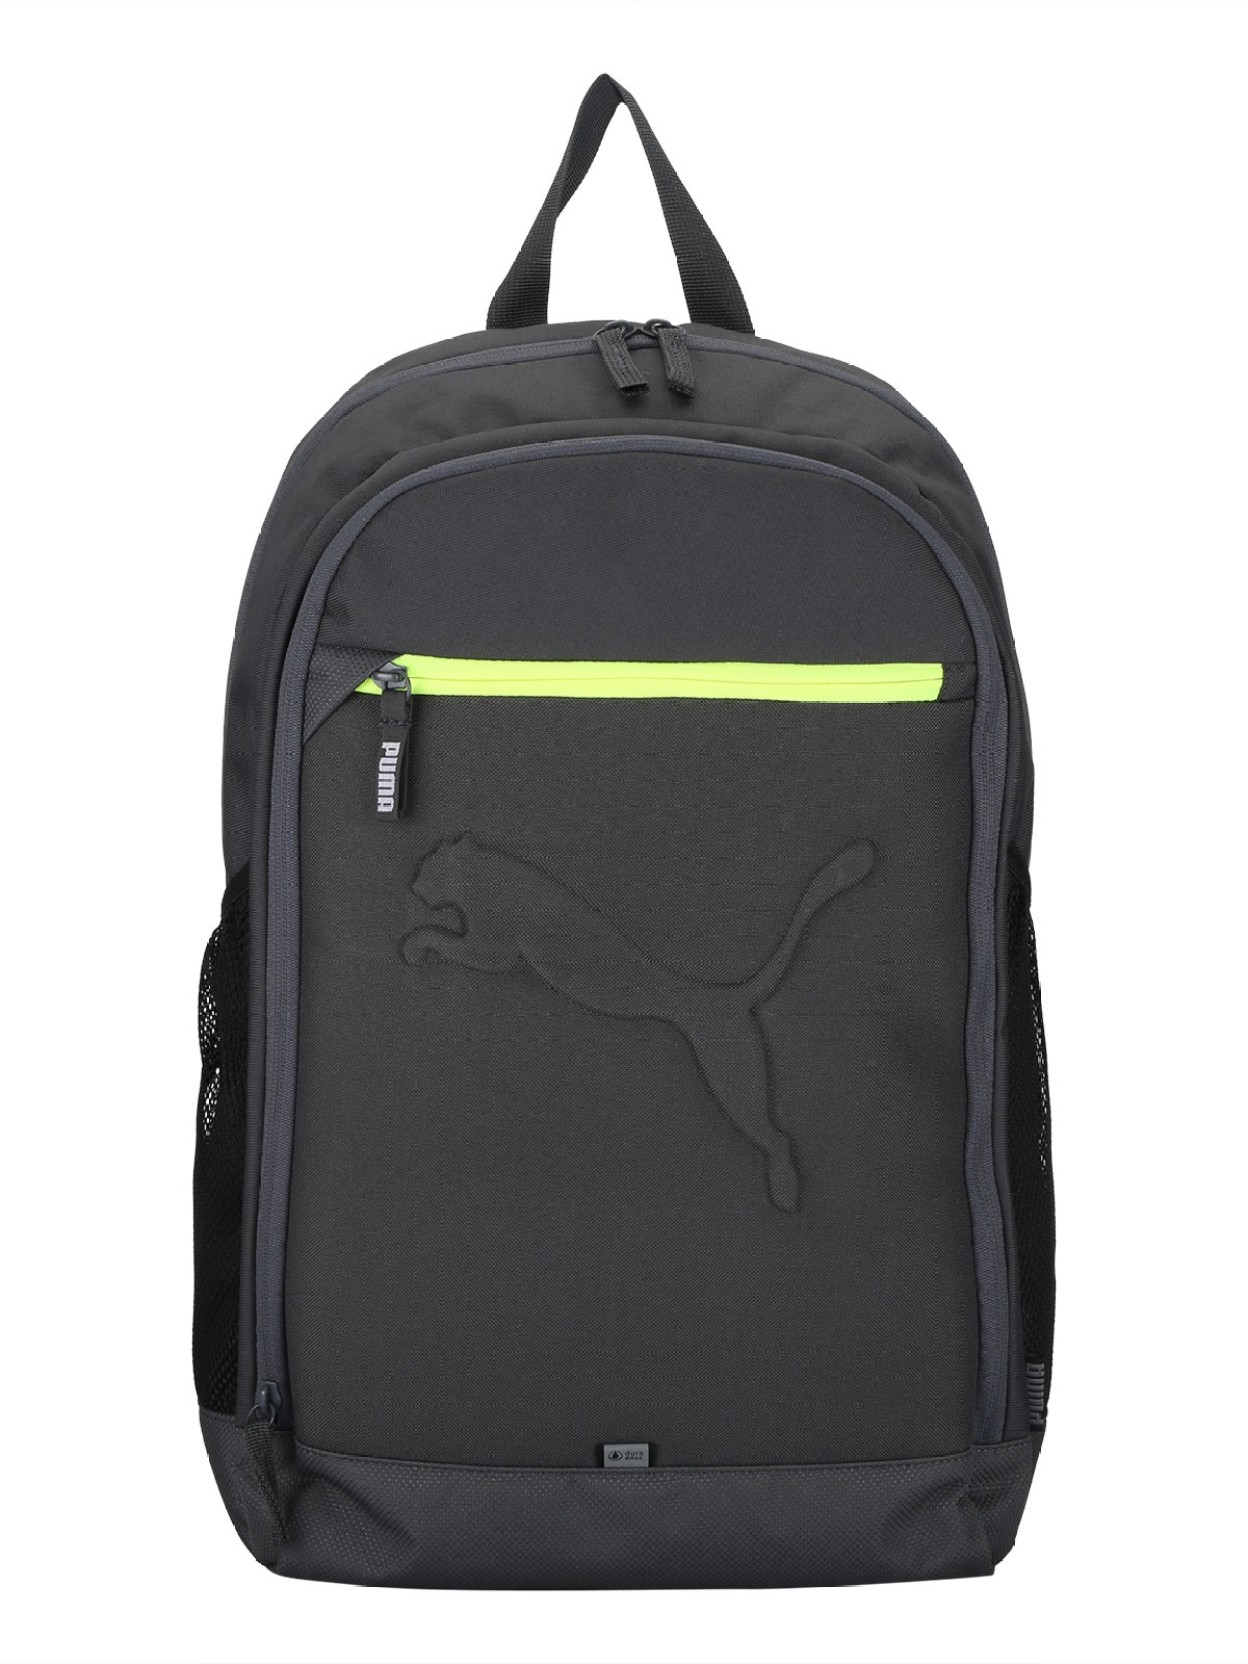 Puma Buzz 26 L Laptop Backpack Asphalt - Price in India  0ddf4adf24ecc